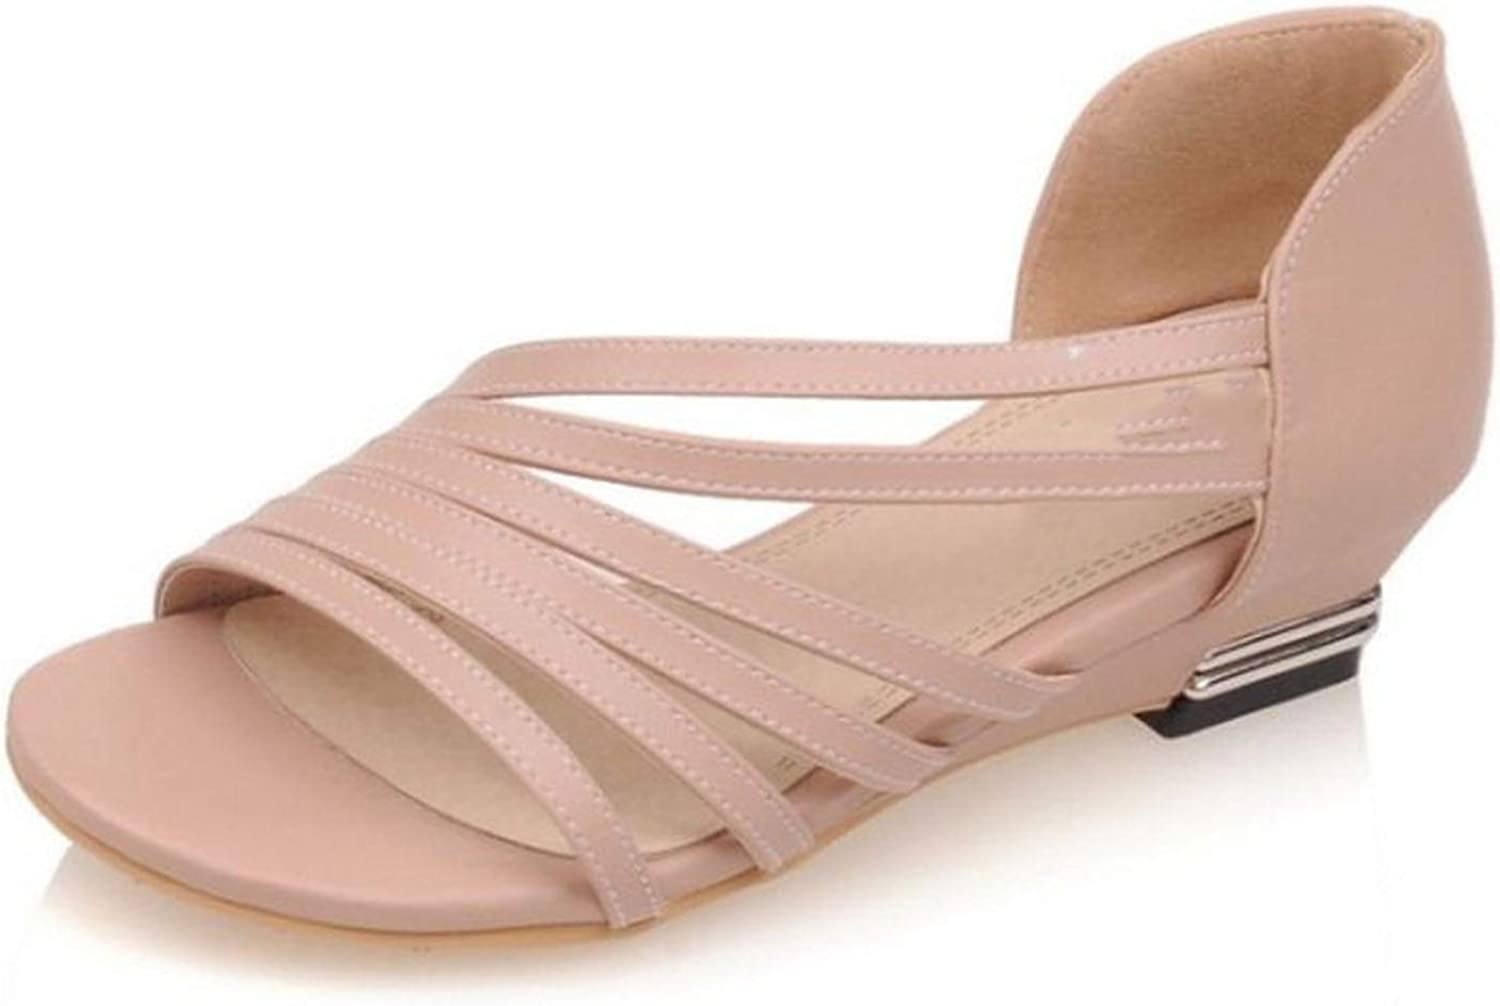 Fairly Flats Peep Toe shoes Cross Strap Solid color All Match Flat Vintage s,Ivory,3